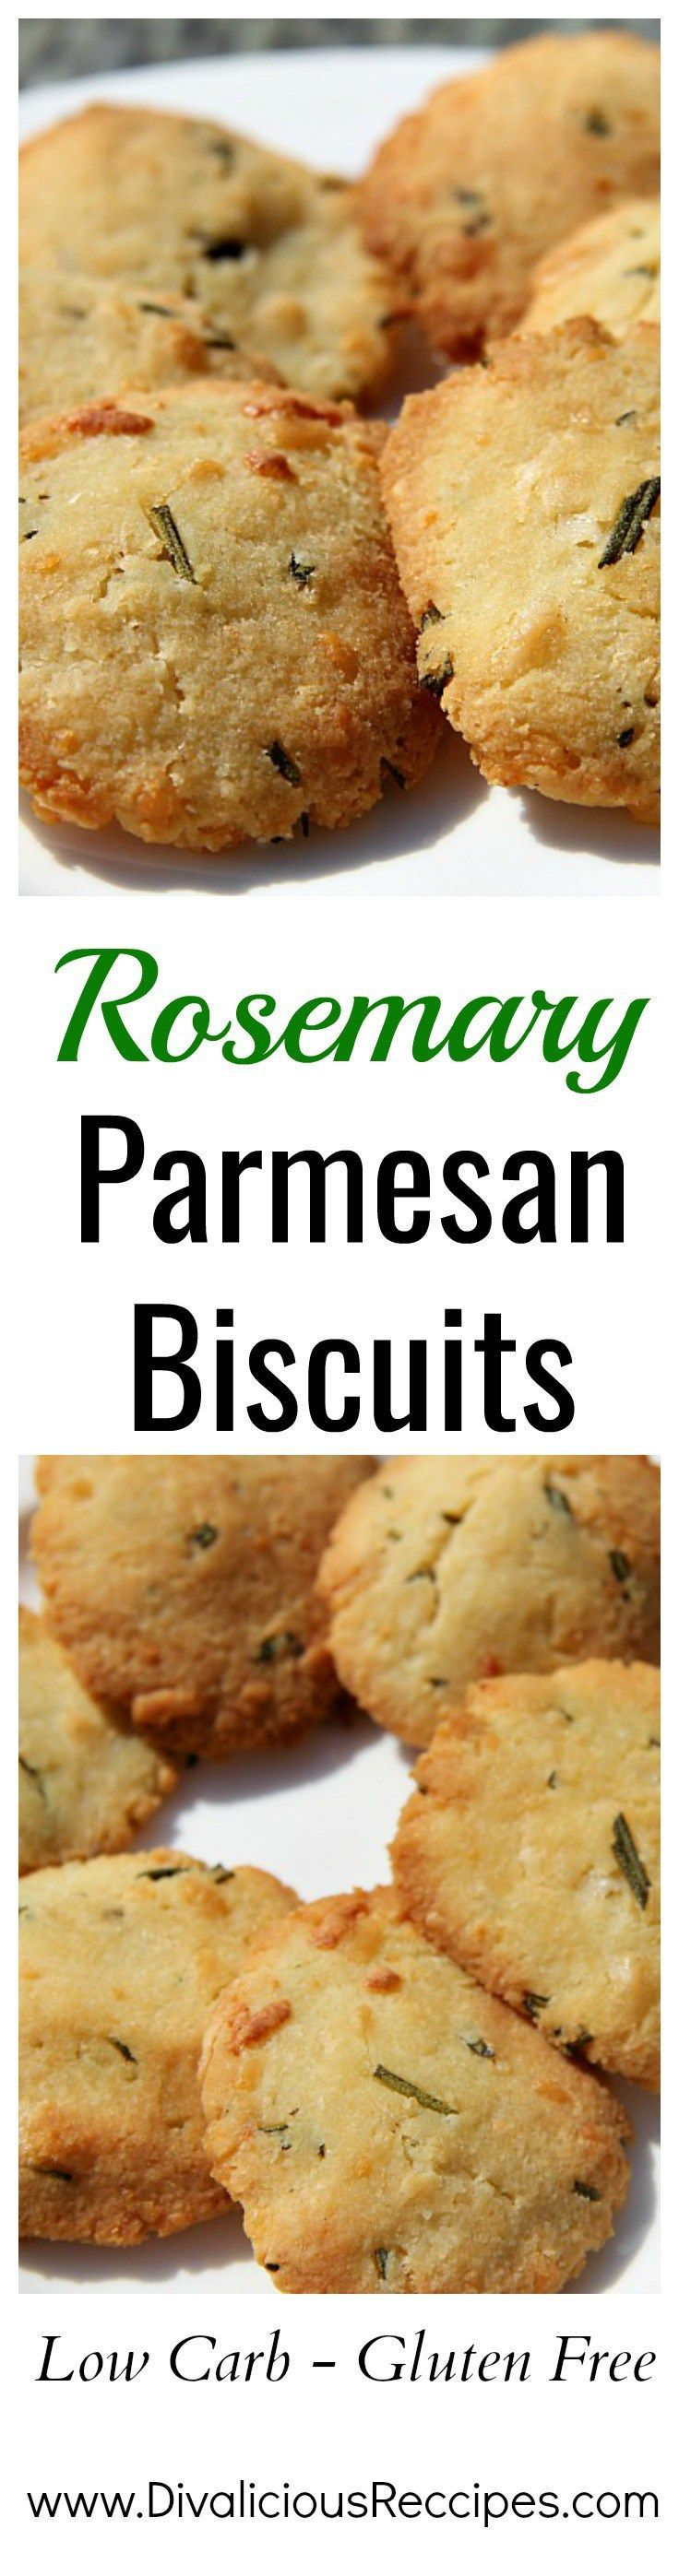 Rosemary Parmesan biscuits are baked with almond flour and make a savoury biscuit.  A healthier option for those following a Low carb, Keto or gluten free diet.